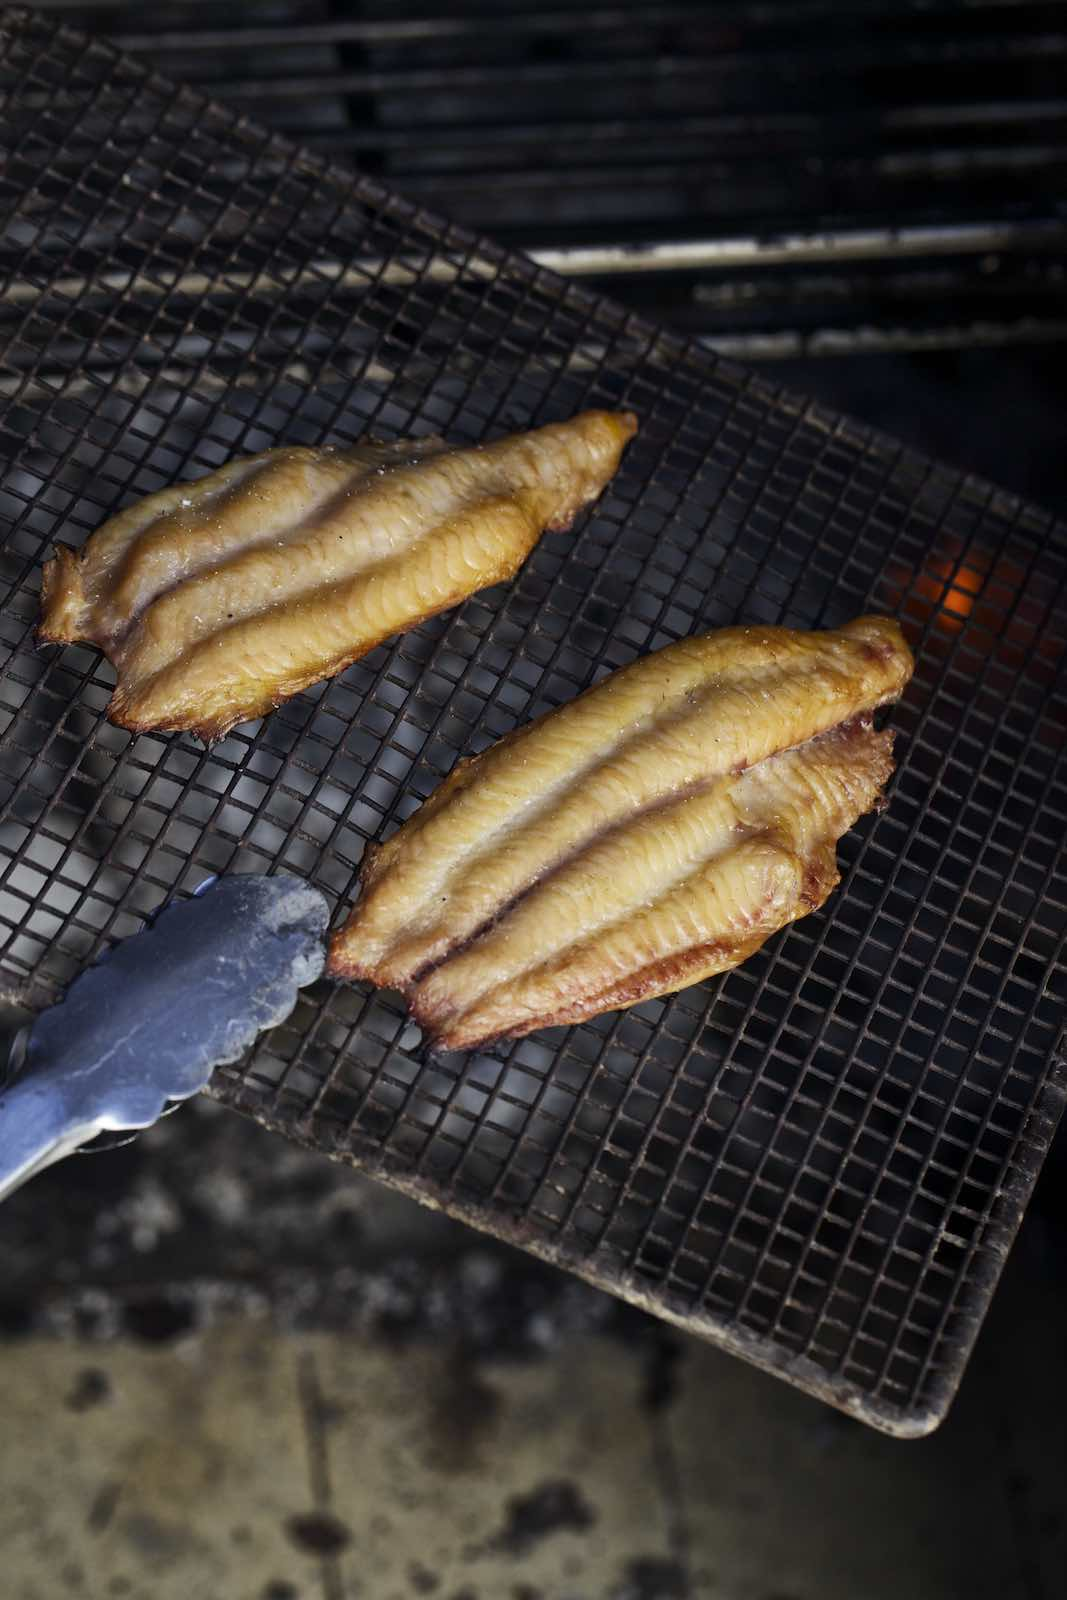 Jody Horton Photography - Cooked fish fillets on a grill grate.